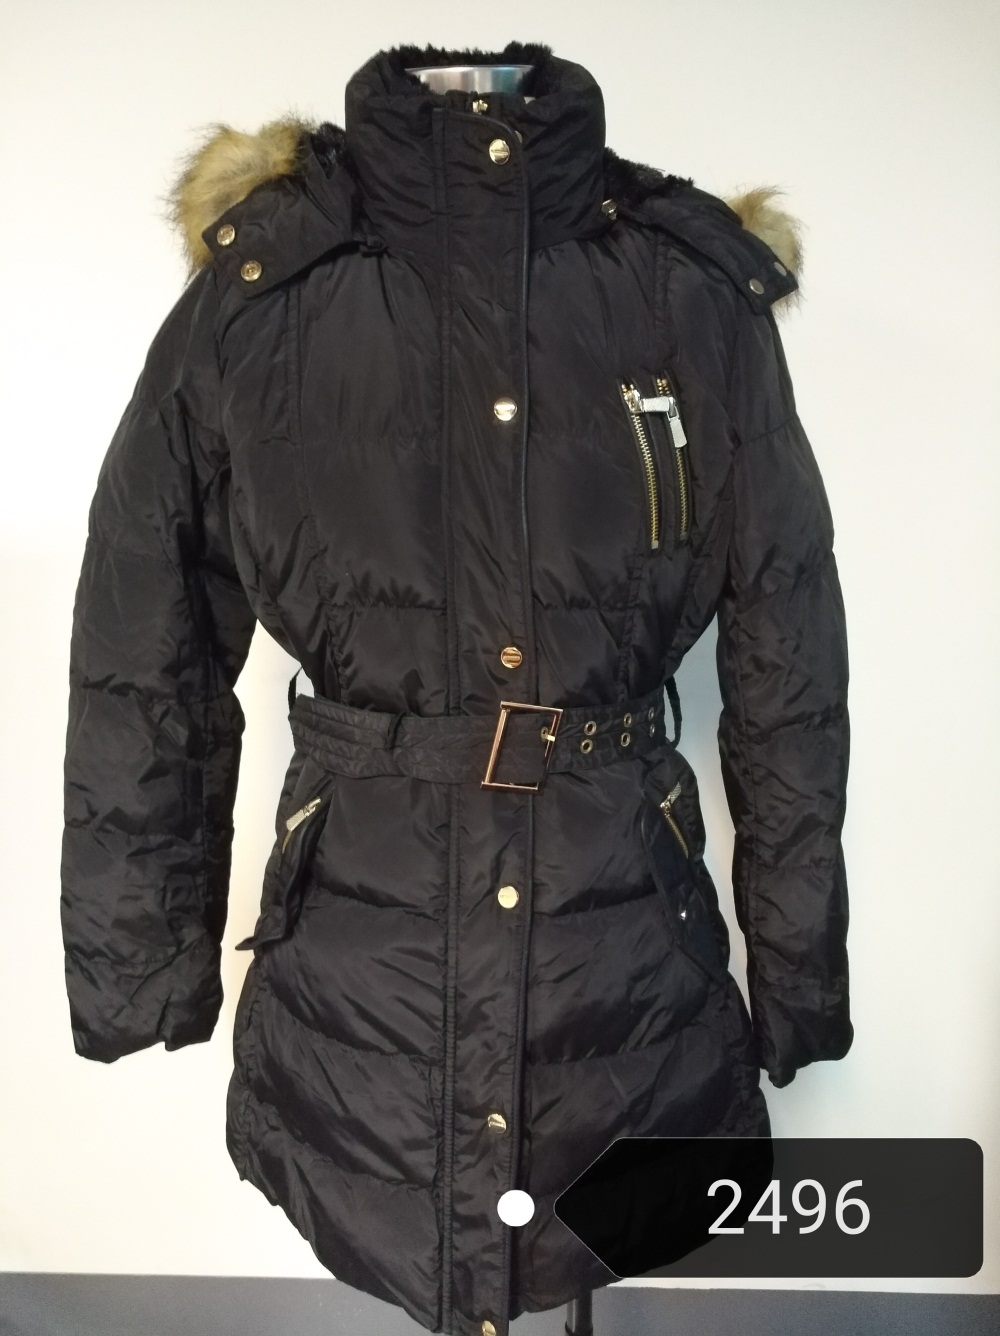 women jacket,fashion jacket,latest winter jacket for women 2496